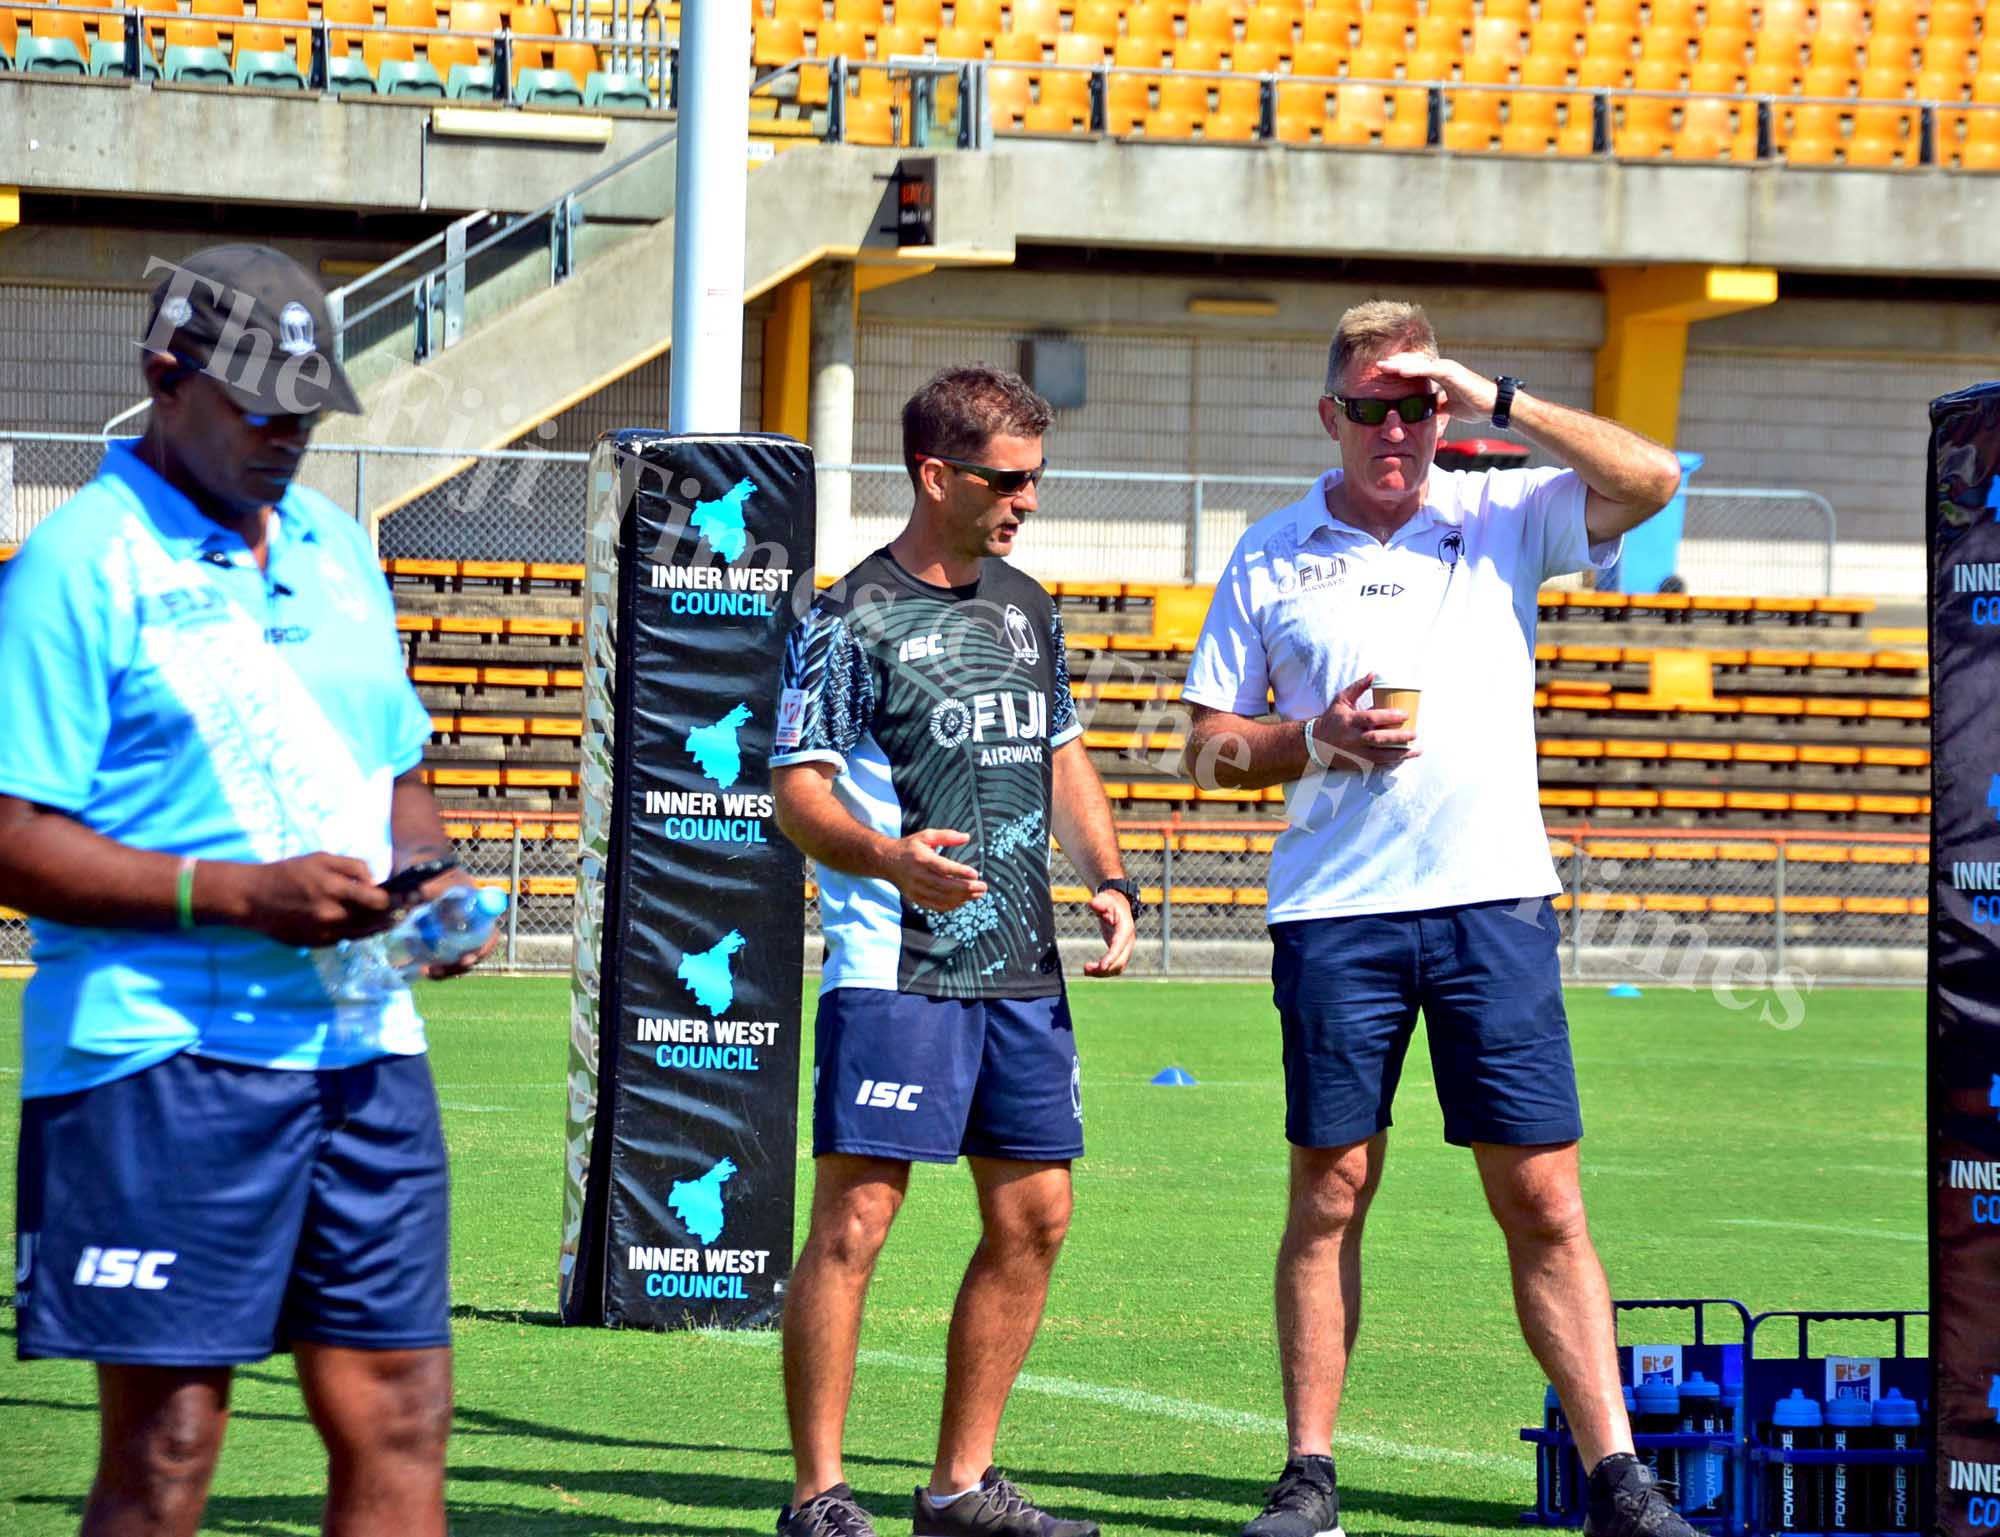 Fiji Airways Flying Fijians coach John McKee having discussions with Fiji Airways 7s coach Gareth Baber during their team training at the Leichhardt Oval ground in Sydney, Australia on Wednesday, January 24, 2018. Picture: JONACANI LALAKOBAU